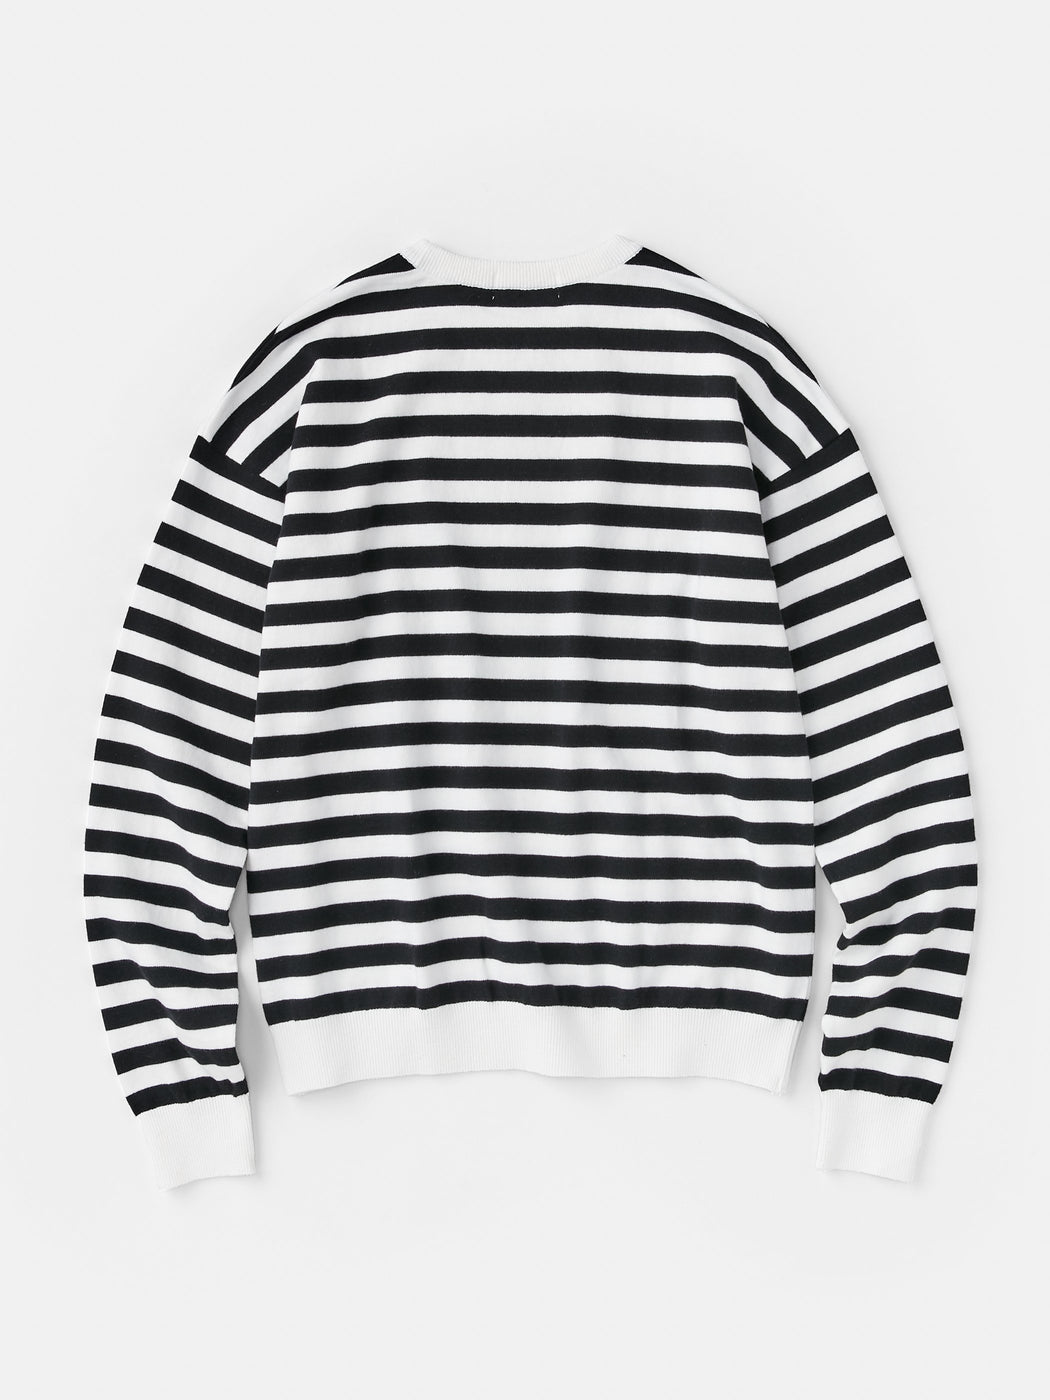 ALOYE G.F.G.S. Men's Cotton Knitted Sweater Black Stripe